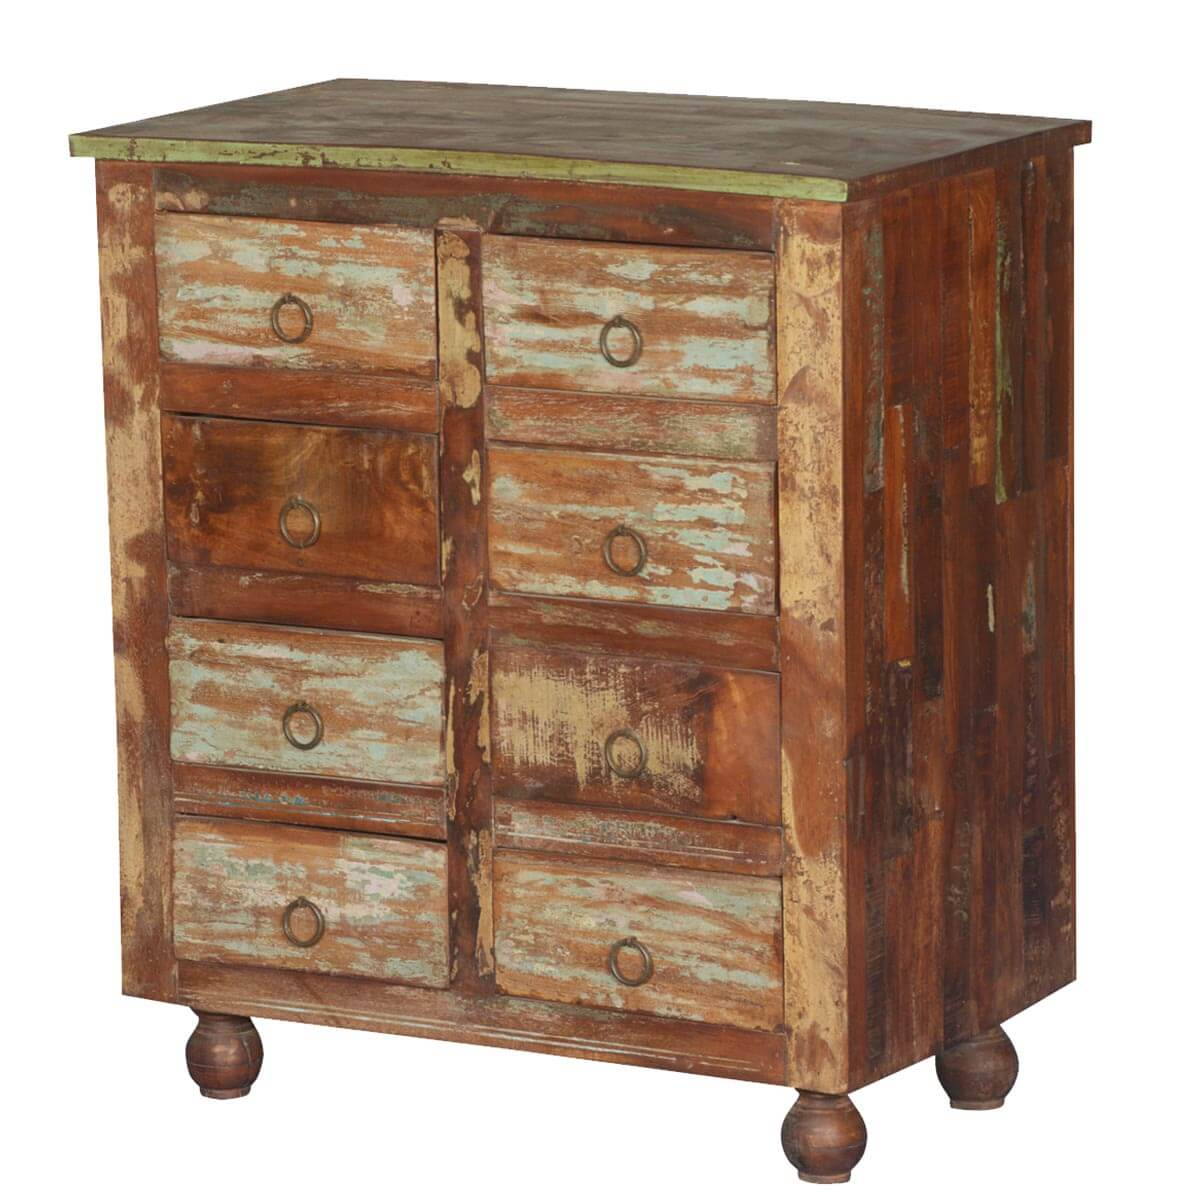 Fontana Rustic Reclaimed Wood 8 Drawer Double Dresser